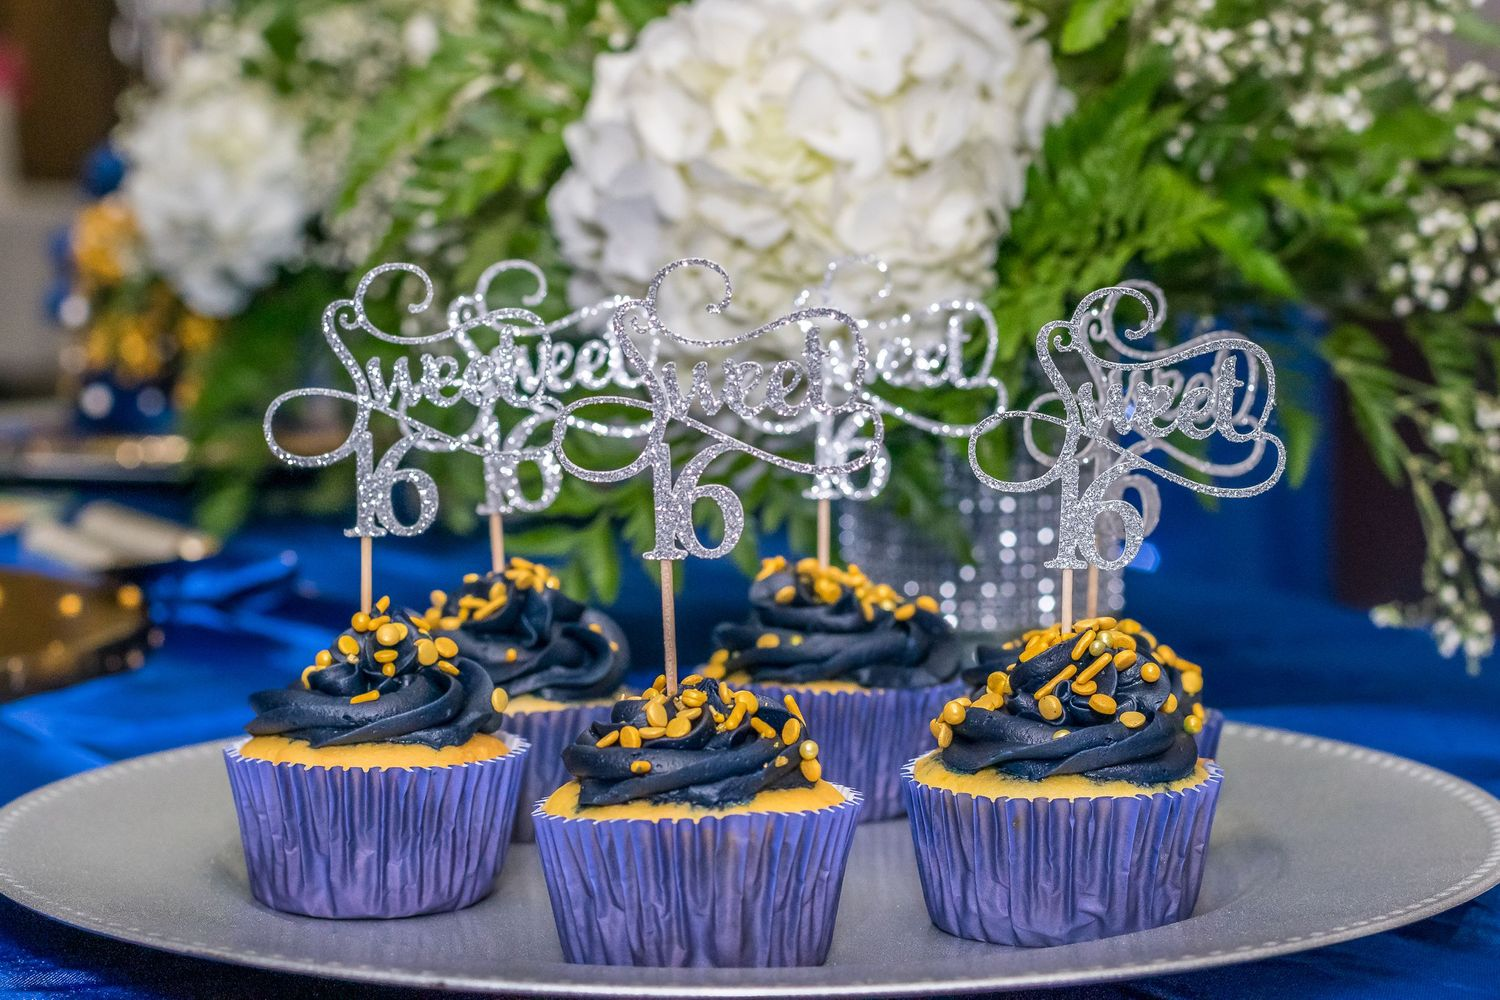 Sweet 16 Cupcakes with Sweet 16 topper